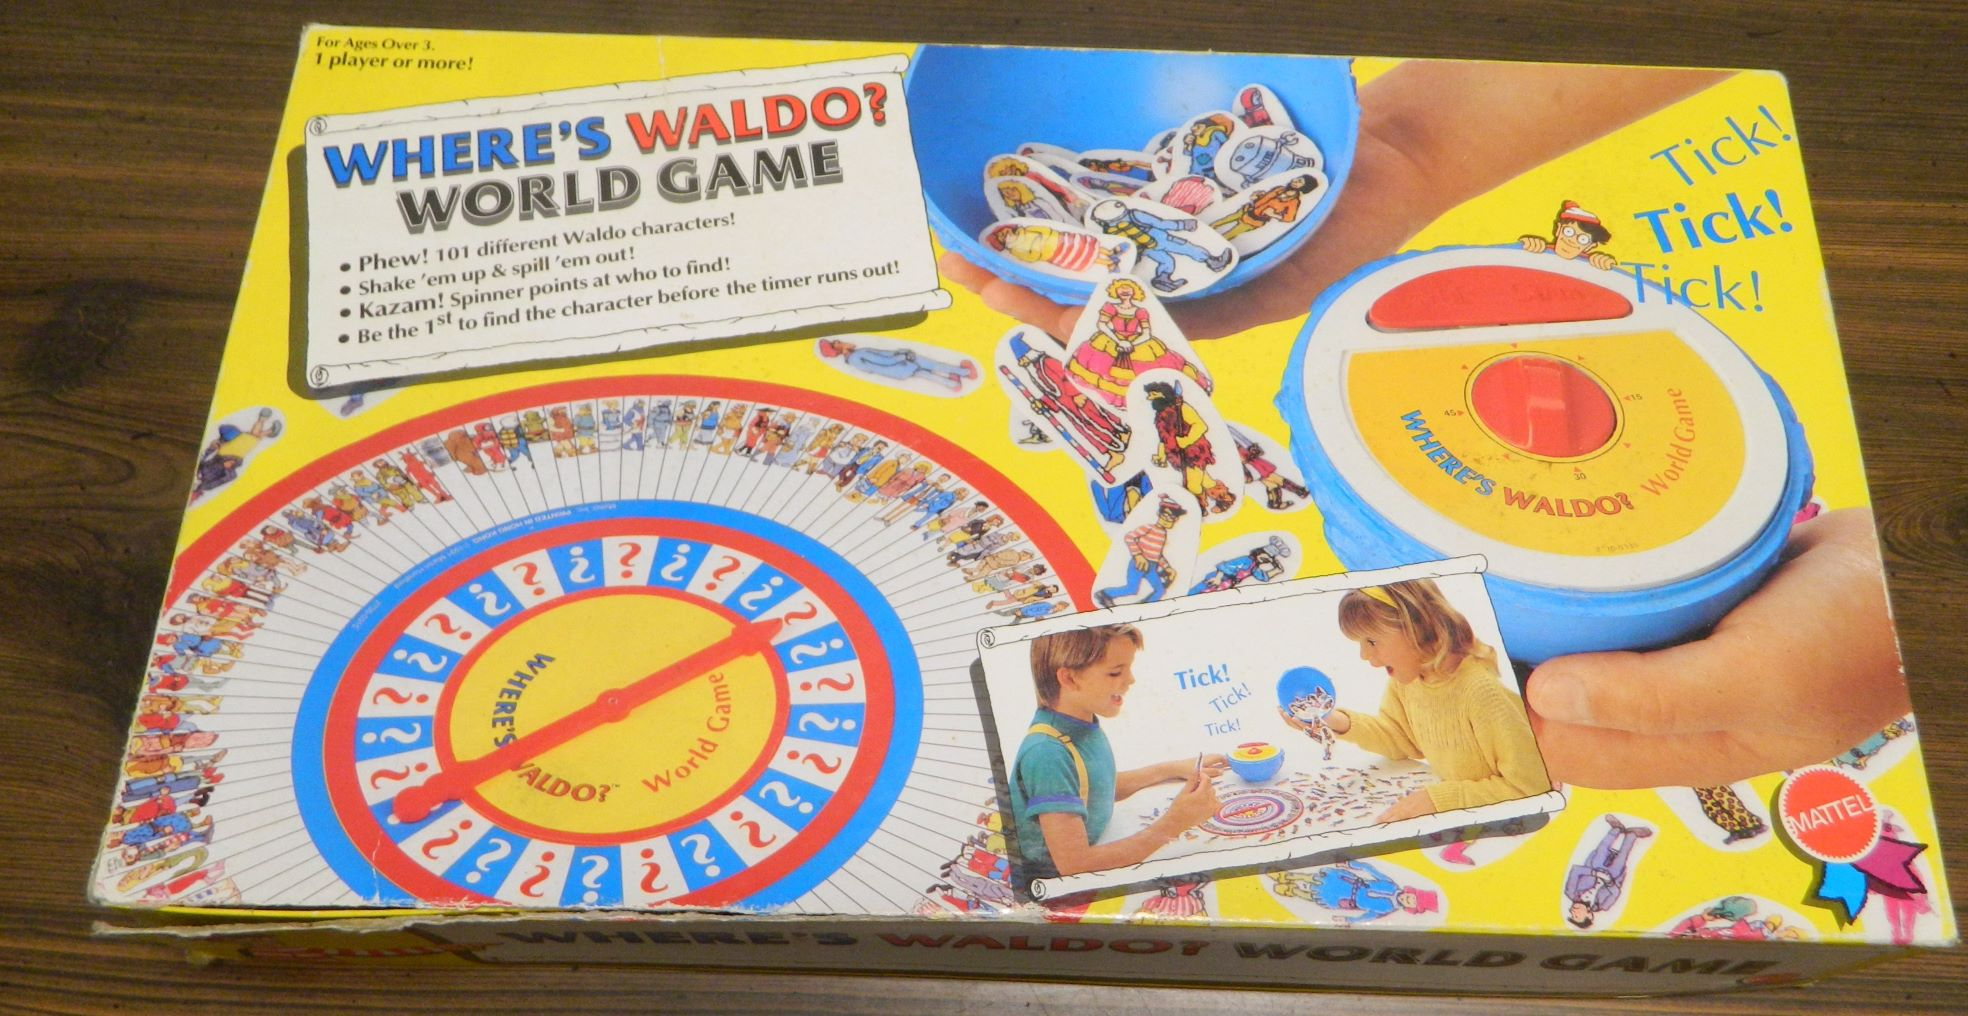 Box for Where's Waldo World Game